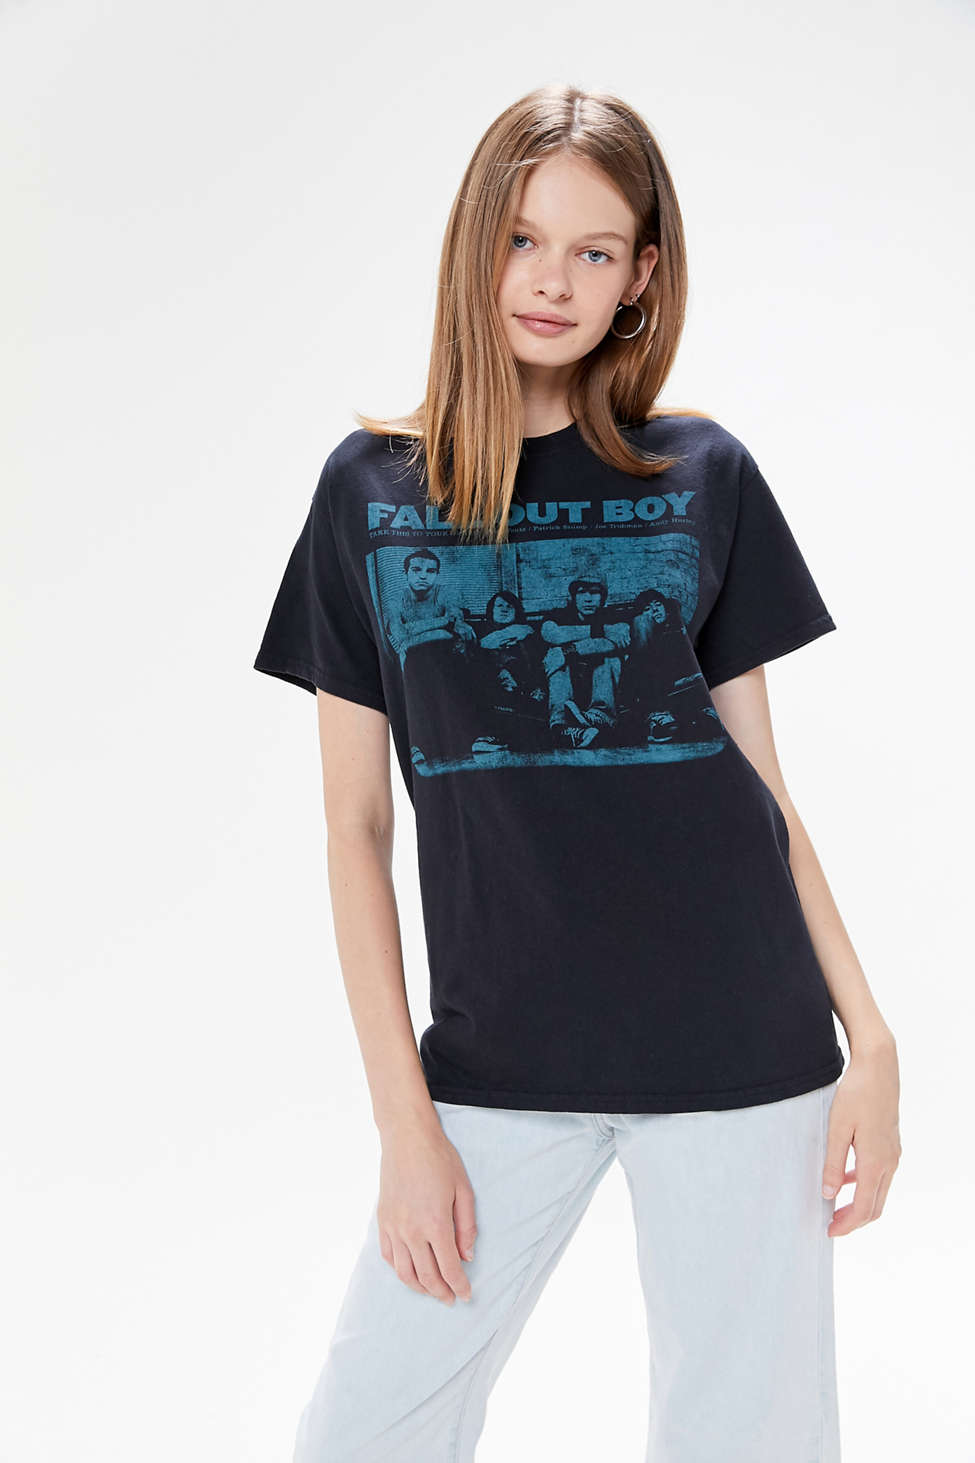 Fall Out Boy Take This To Your Grave Tee by Urban Outfitters